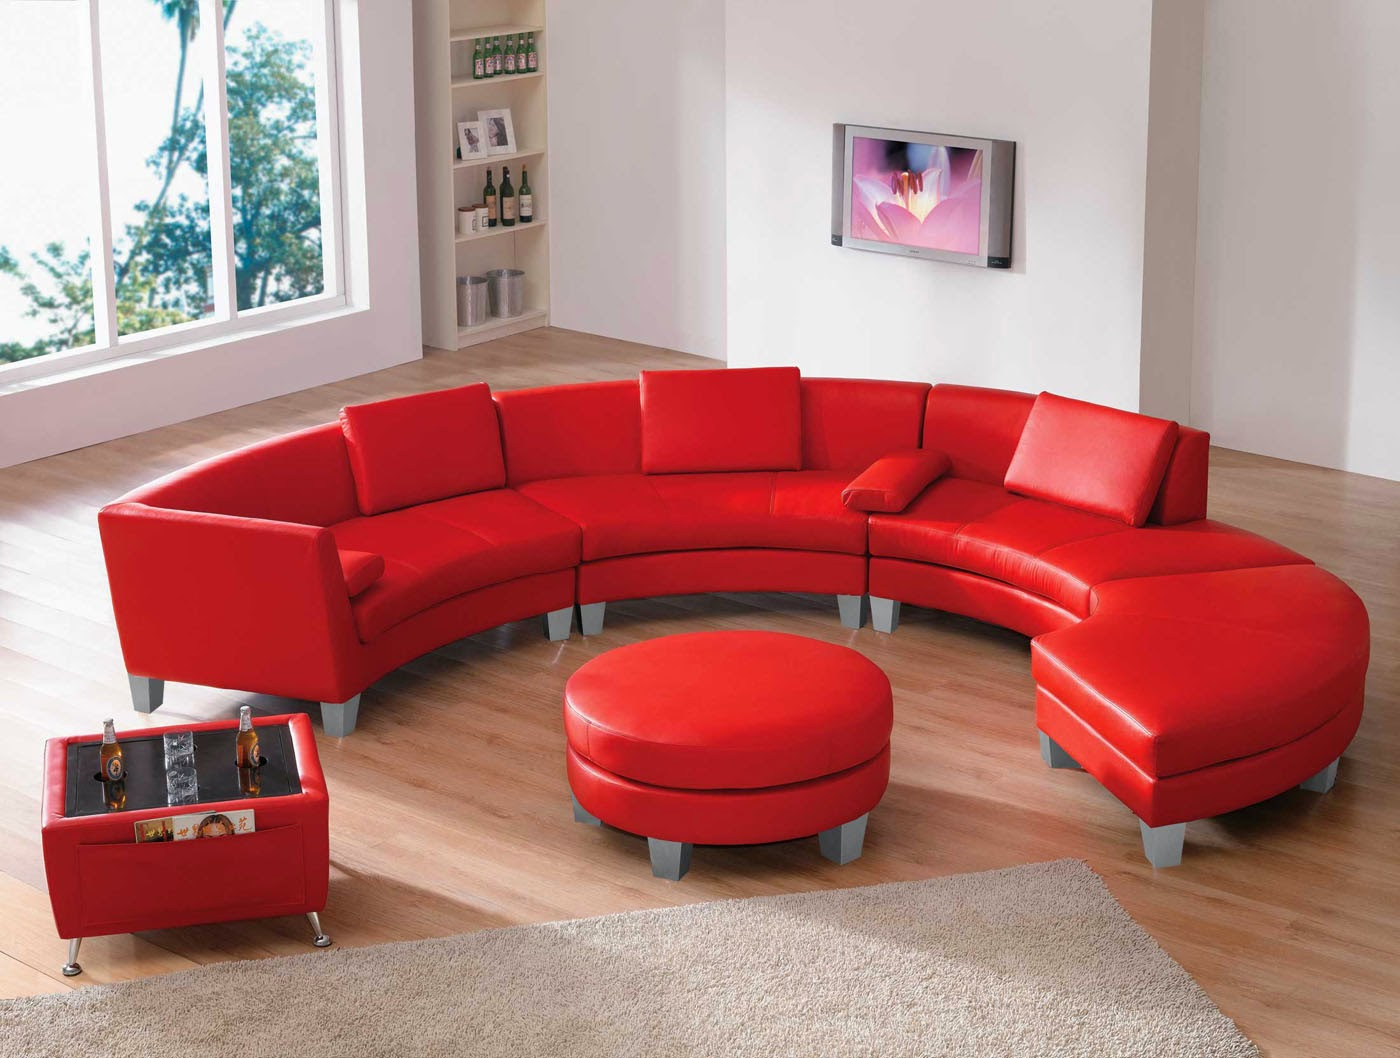 Stylish Sofa Designs contemporary sofa ideas | modern ideas for living room furniture